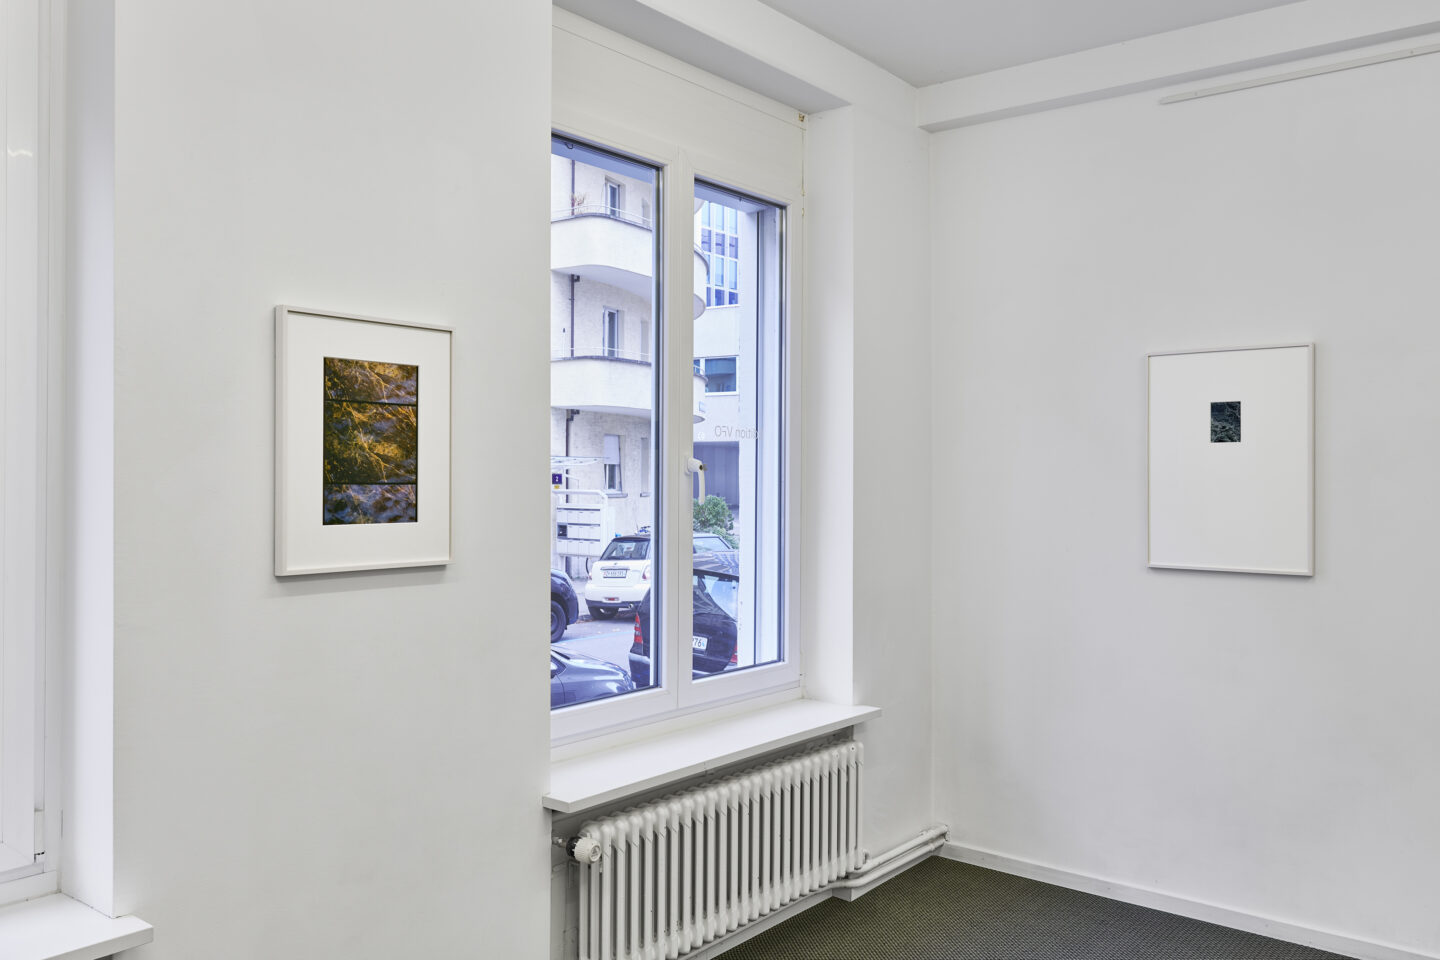 Exhibition View Groupshow «La metamorphose de l'art imprime; view on Philippe Decrauzat, Different time (Replica), 2019 and A frame in a frame in a frame (Replica), 2019» at VFO, Zurich, 2019 / Photo: Bernhard Strauss / Courtesy: the artist and VFO, Zurich